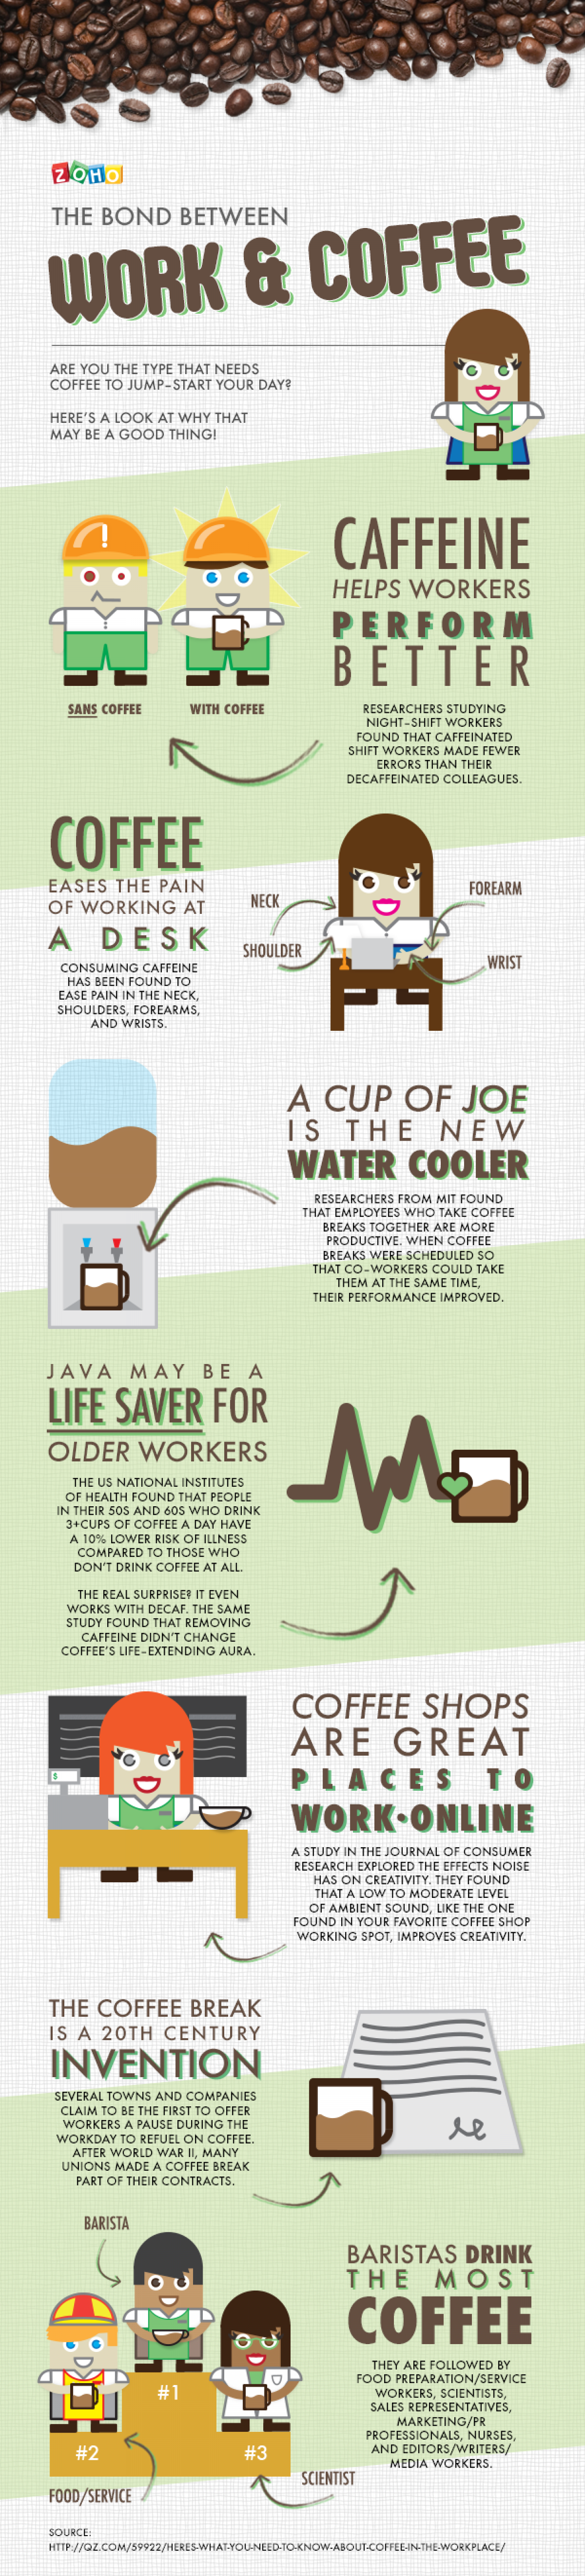 The bond between work and coffee Infographic